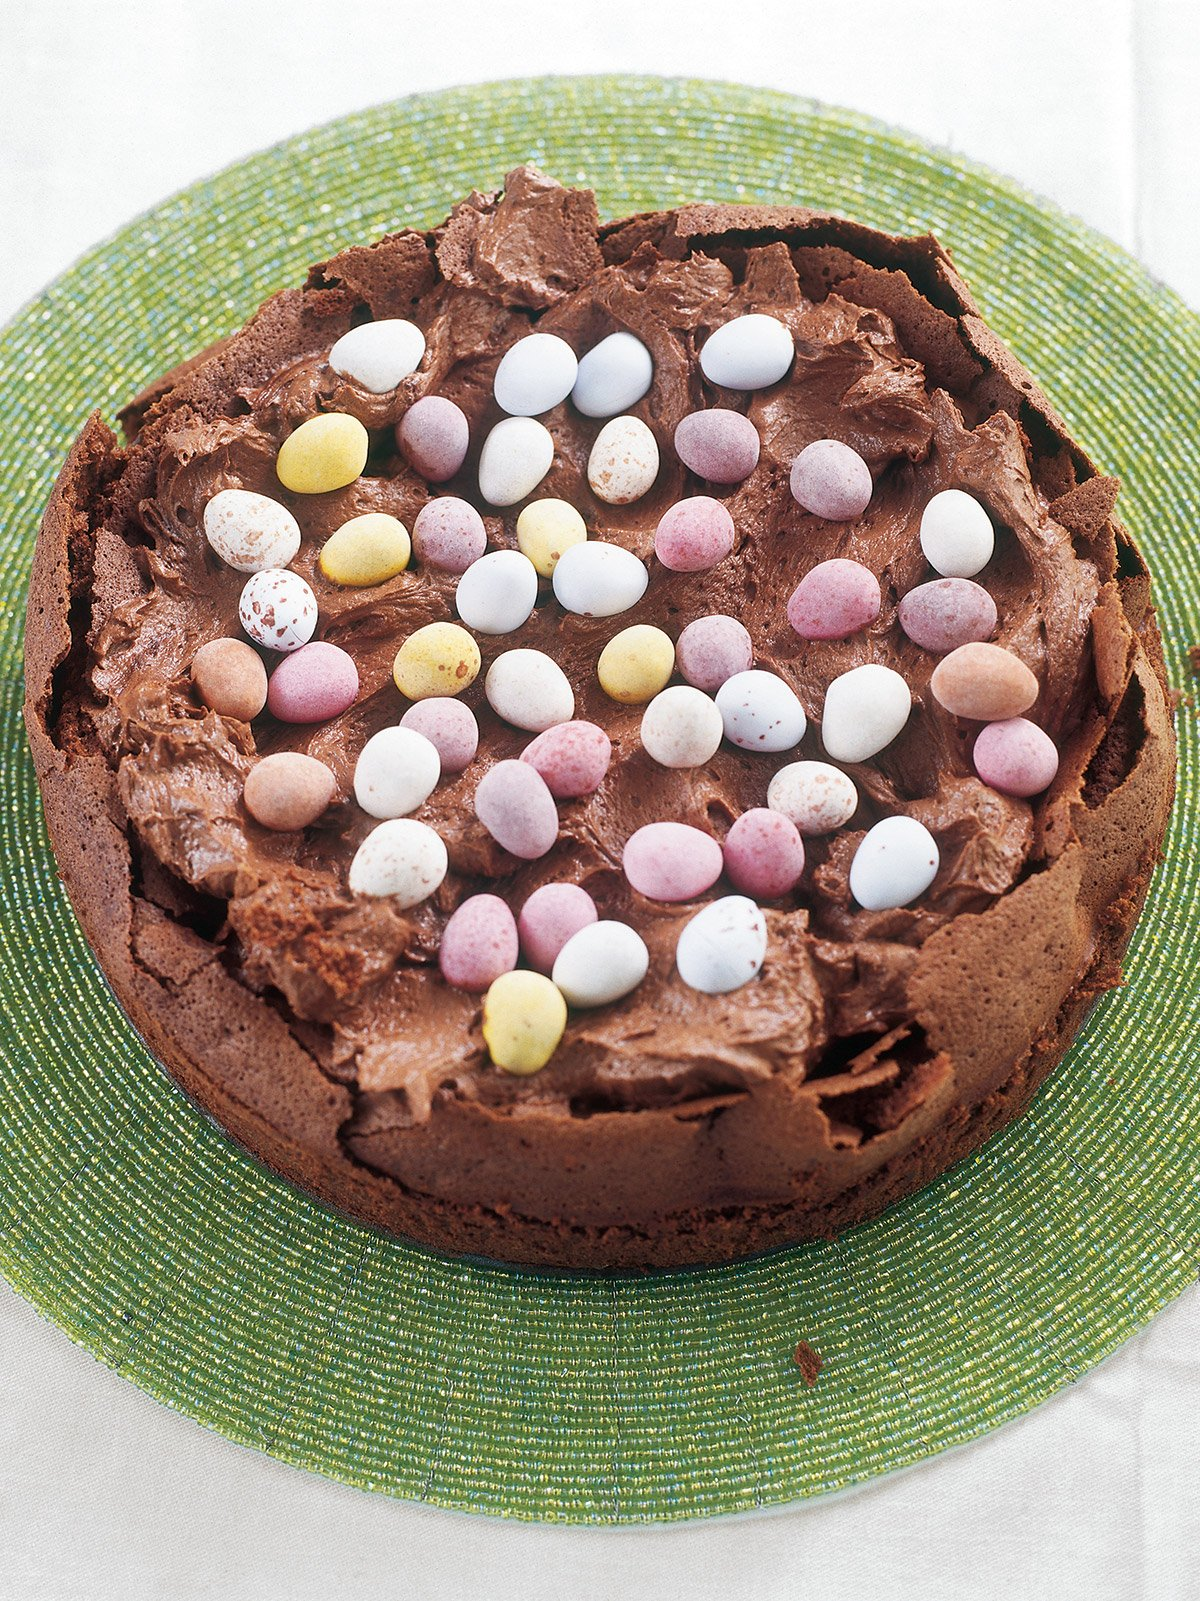 Chocolate Easter Cake Images : Easter Egg Nest Cake Nigella s Recipes Nigella Lawson